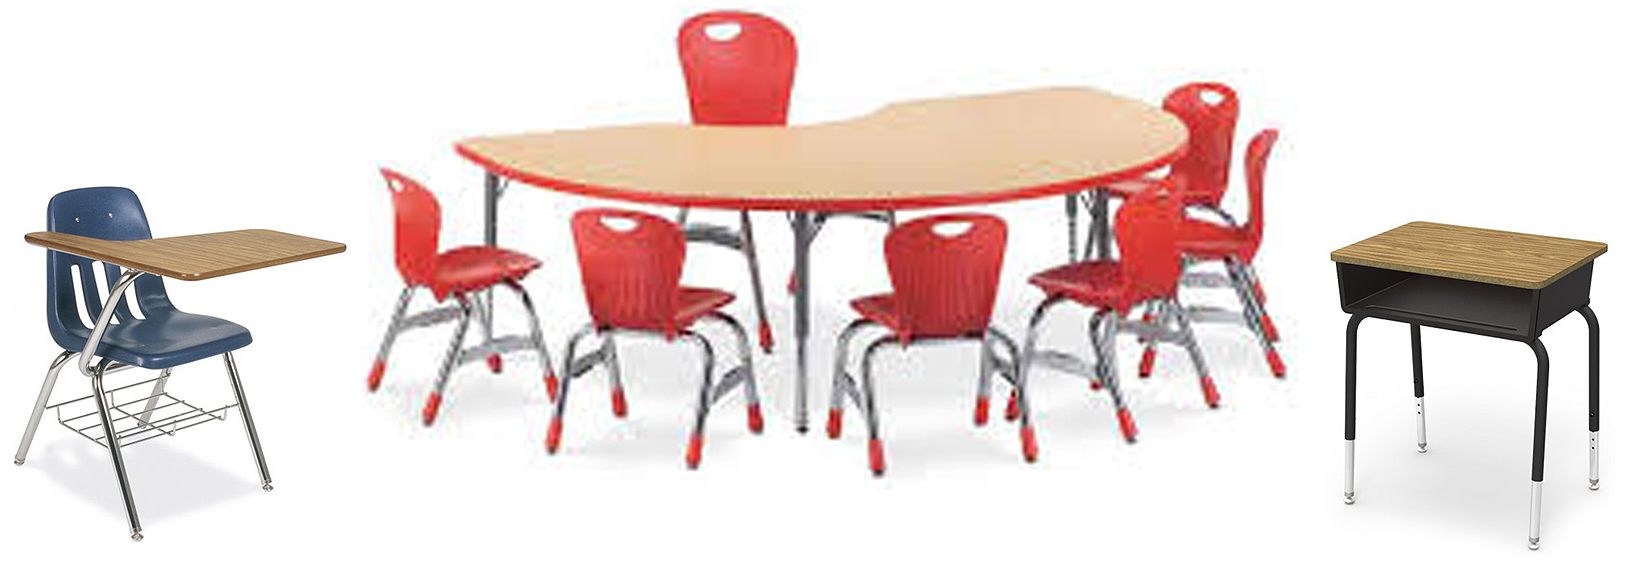 Virco Tables chairs and desks